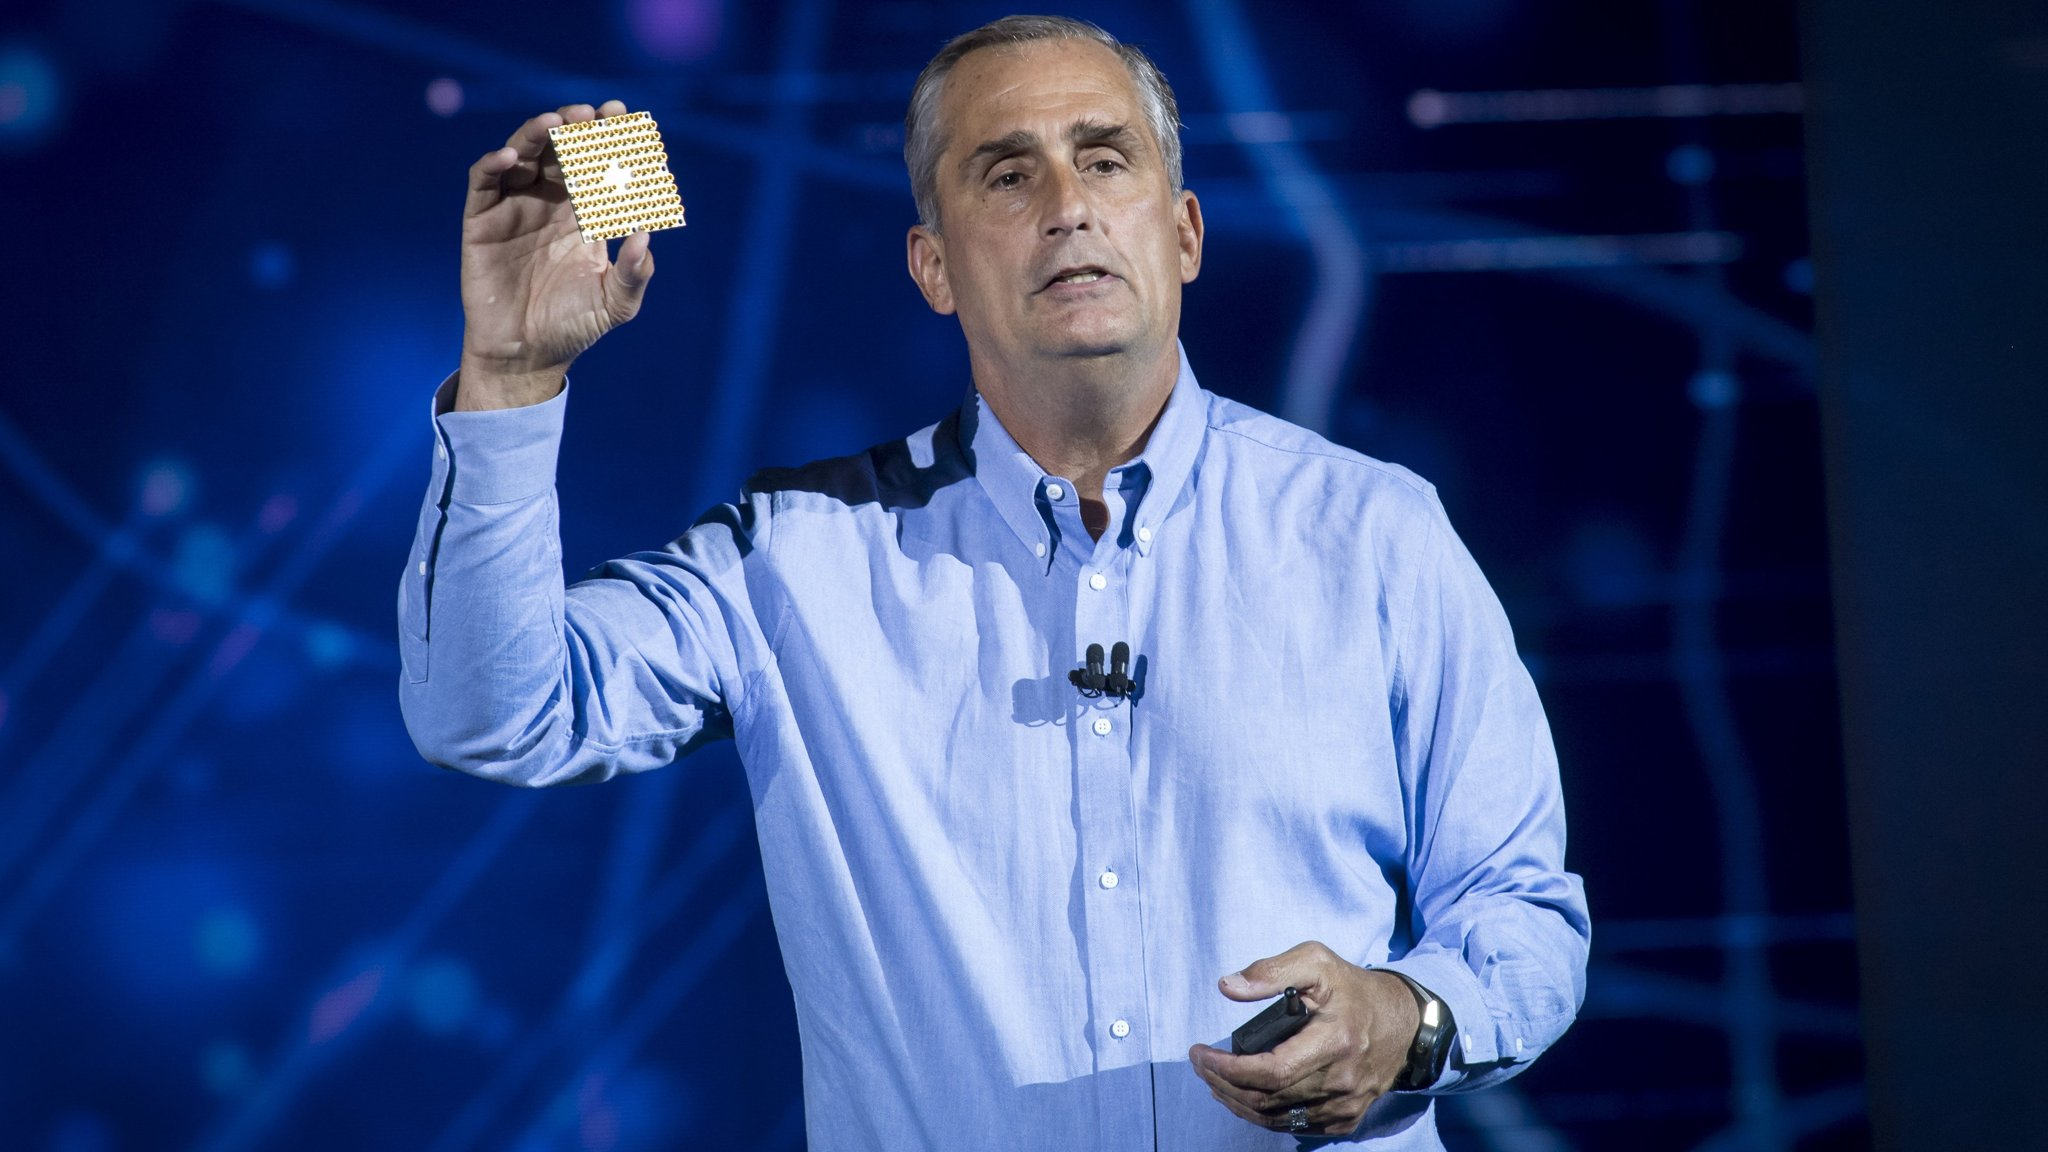 Intel's Brian Krzanich defends response to chip security flaw